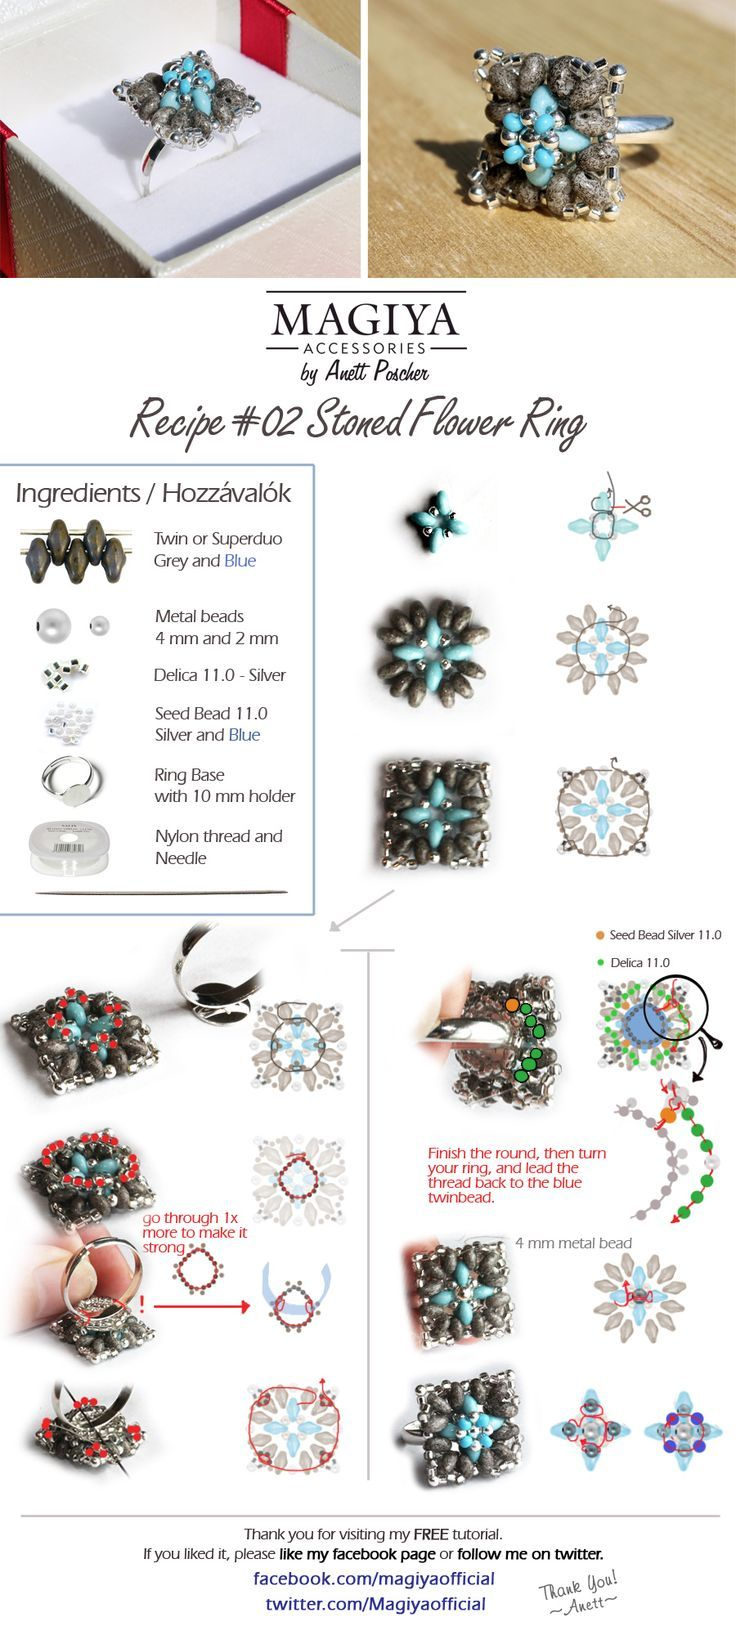 Best seed bead jewelry 2017 free ring tutorial with 2 hole beads best seed bead jewelry 2017 free ring tutorial with 2 hole beads seed bead tutorials baditri Choice Image